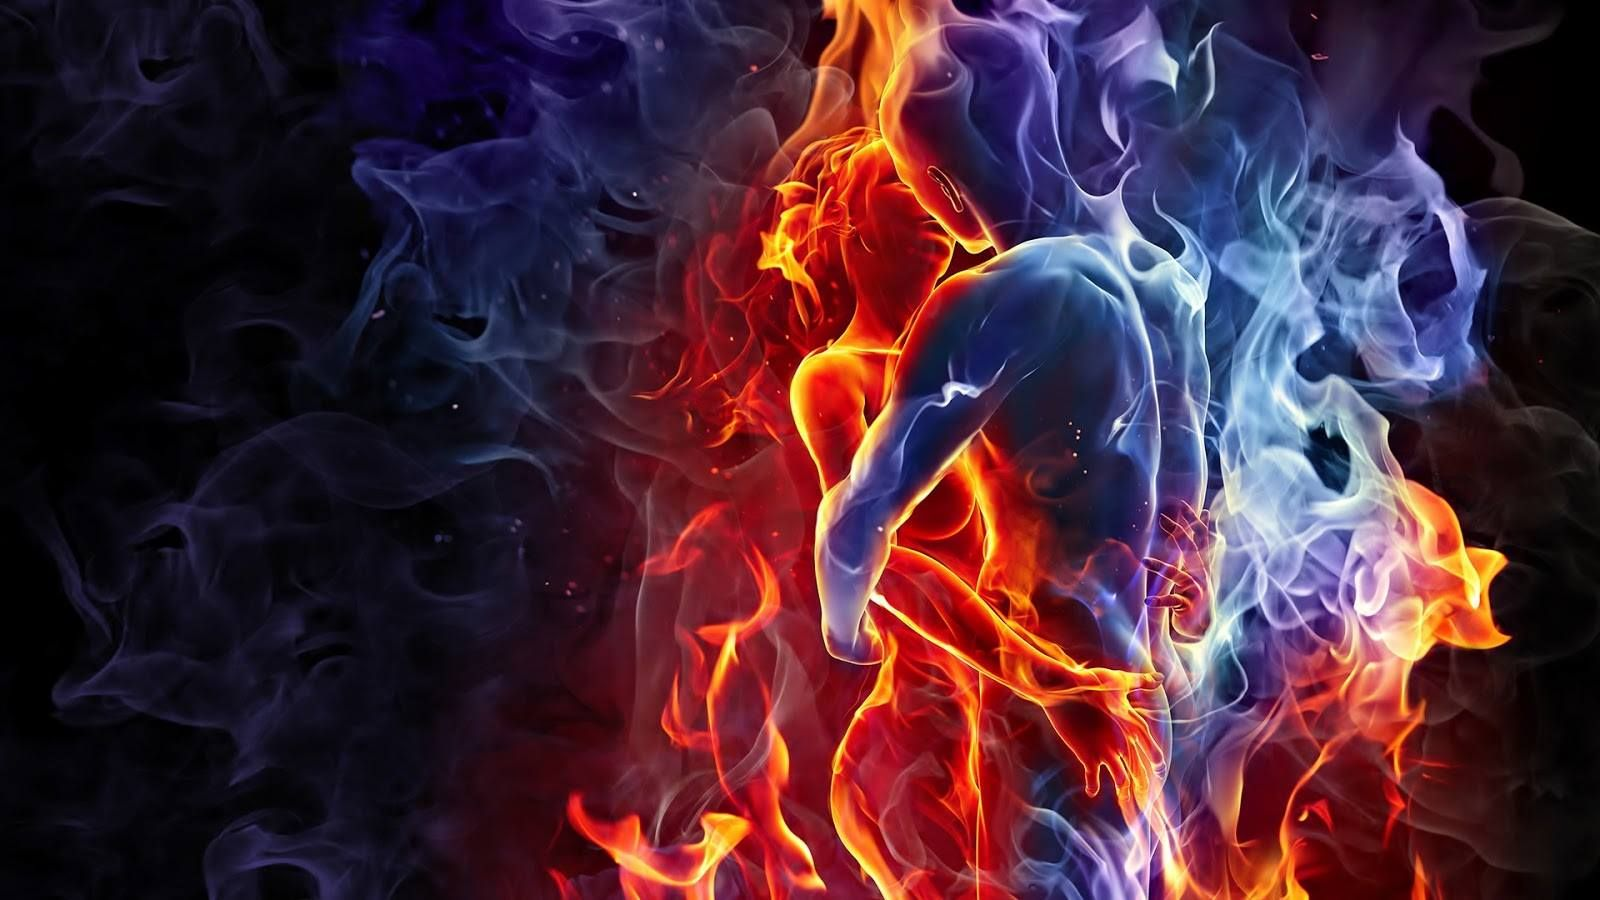 She's like fire and he is like water. She's like the night and the storm in the heart of the sun. He's ancient and forever. Together they converge, at the centre of time and space, as they watch the turn of the universe within divine love.